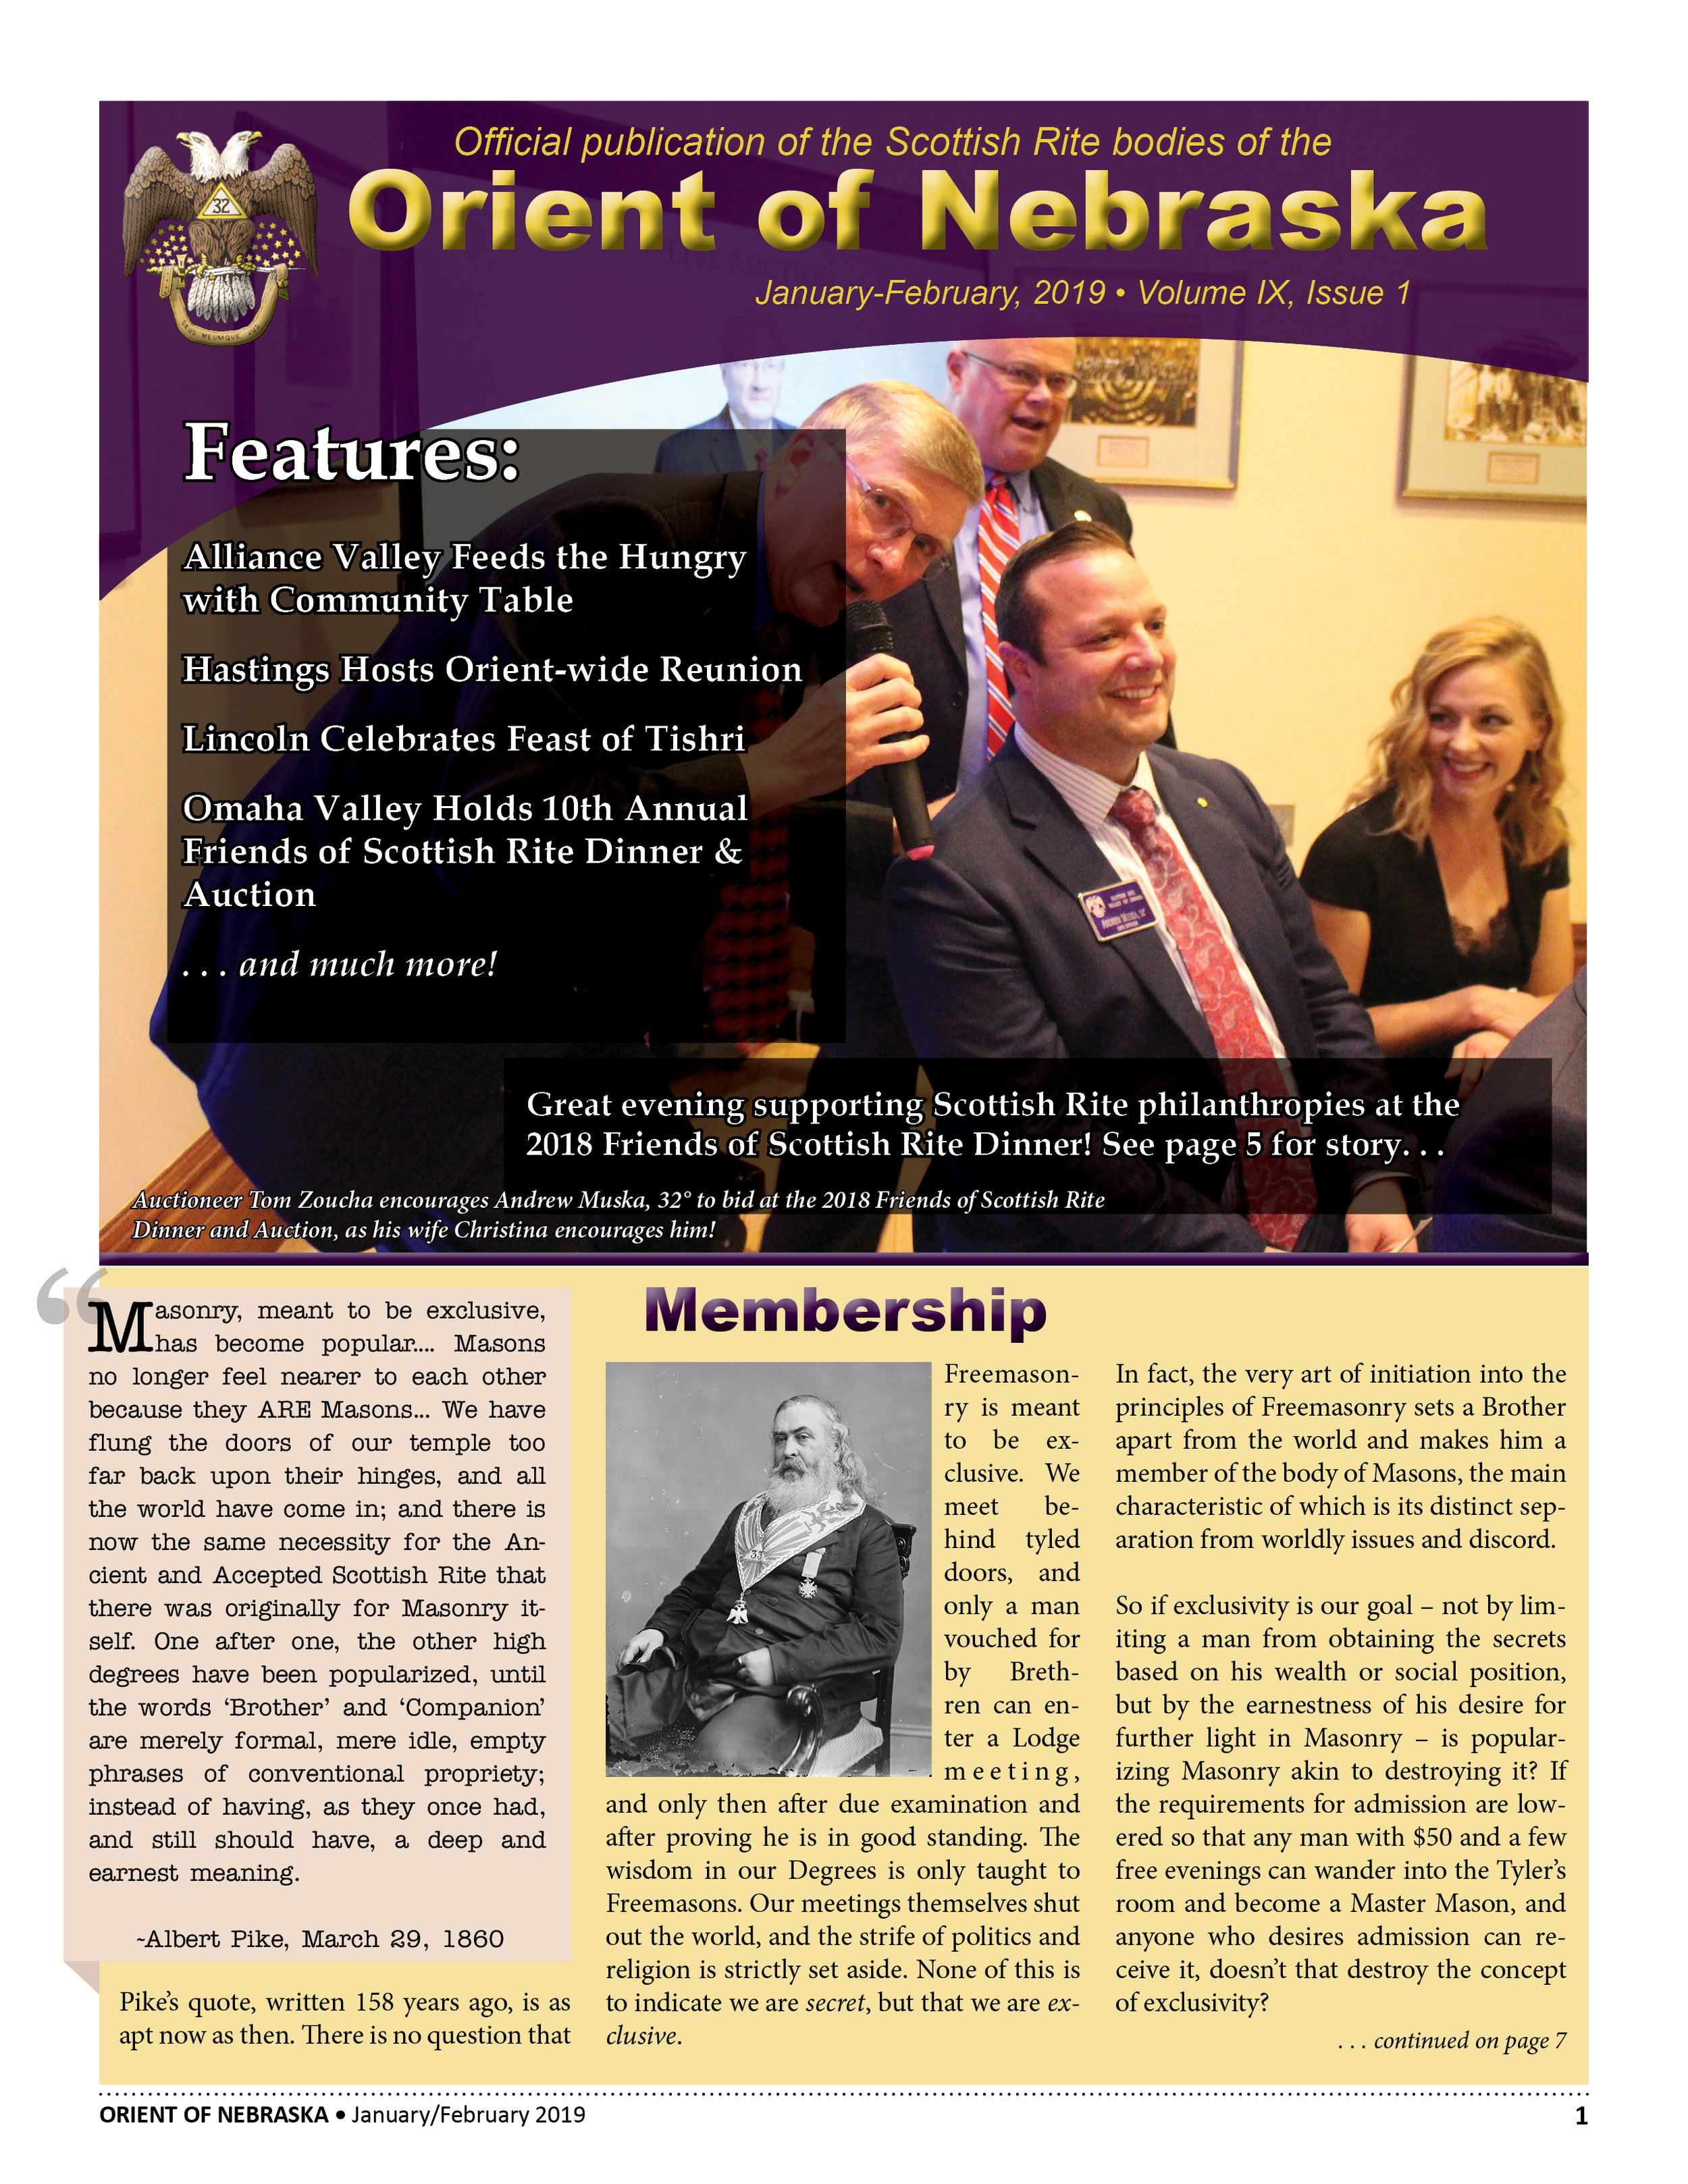 Jan-February, 2019 Volume IX, Issue 1